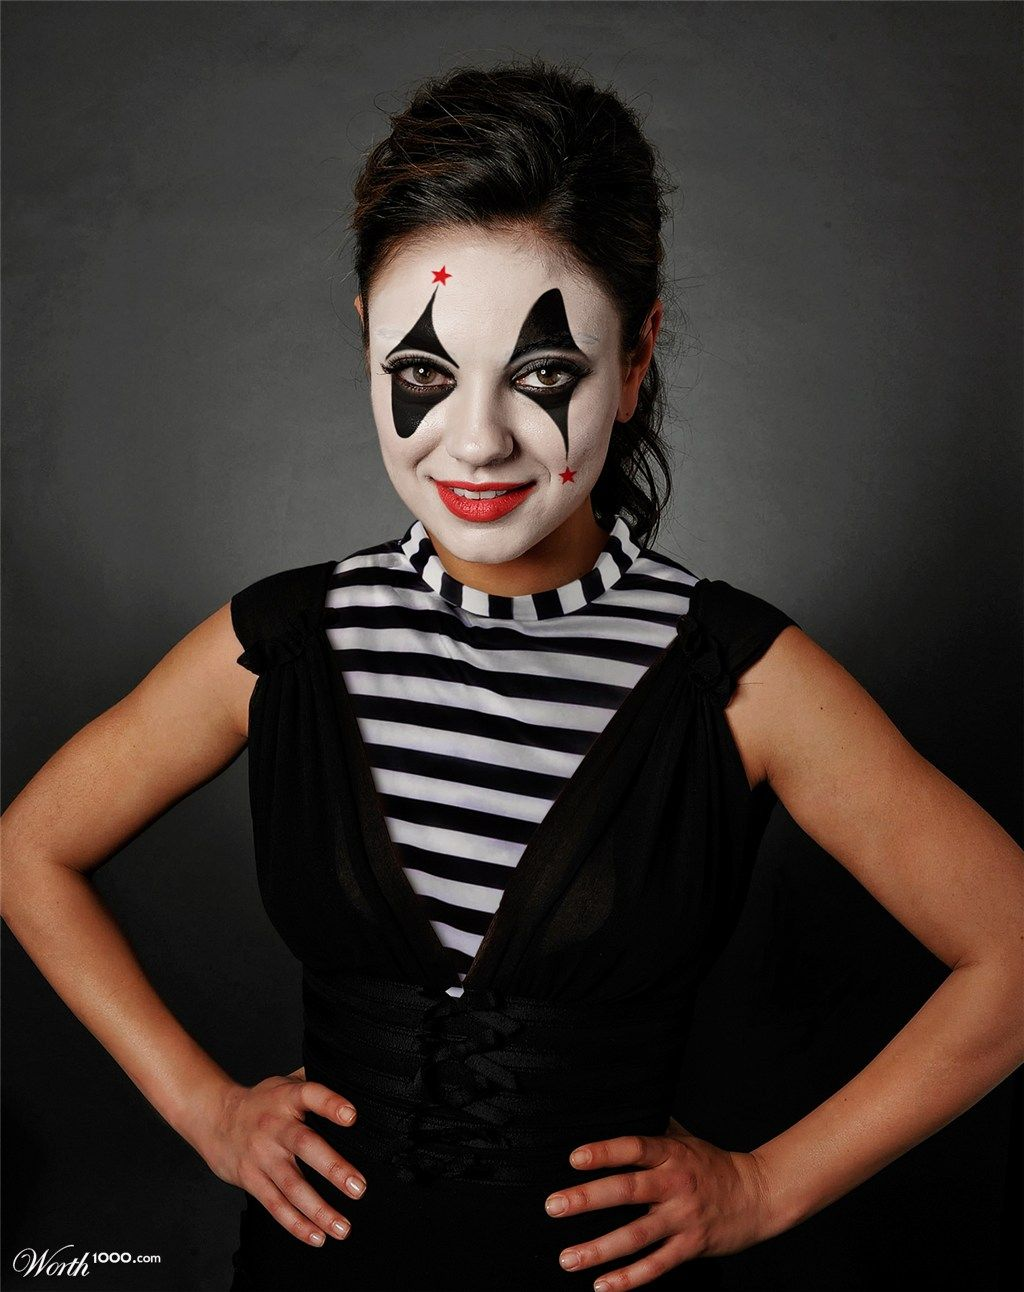 mime mila kuniz worth1000 contests celebrity clowns pinterest halloween kost m und fasching. Black Bedroom Furniture Sets. Home Design Ideas